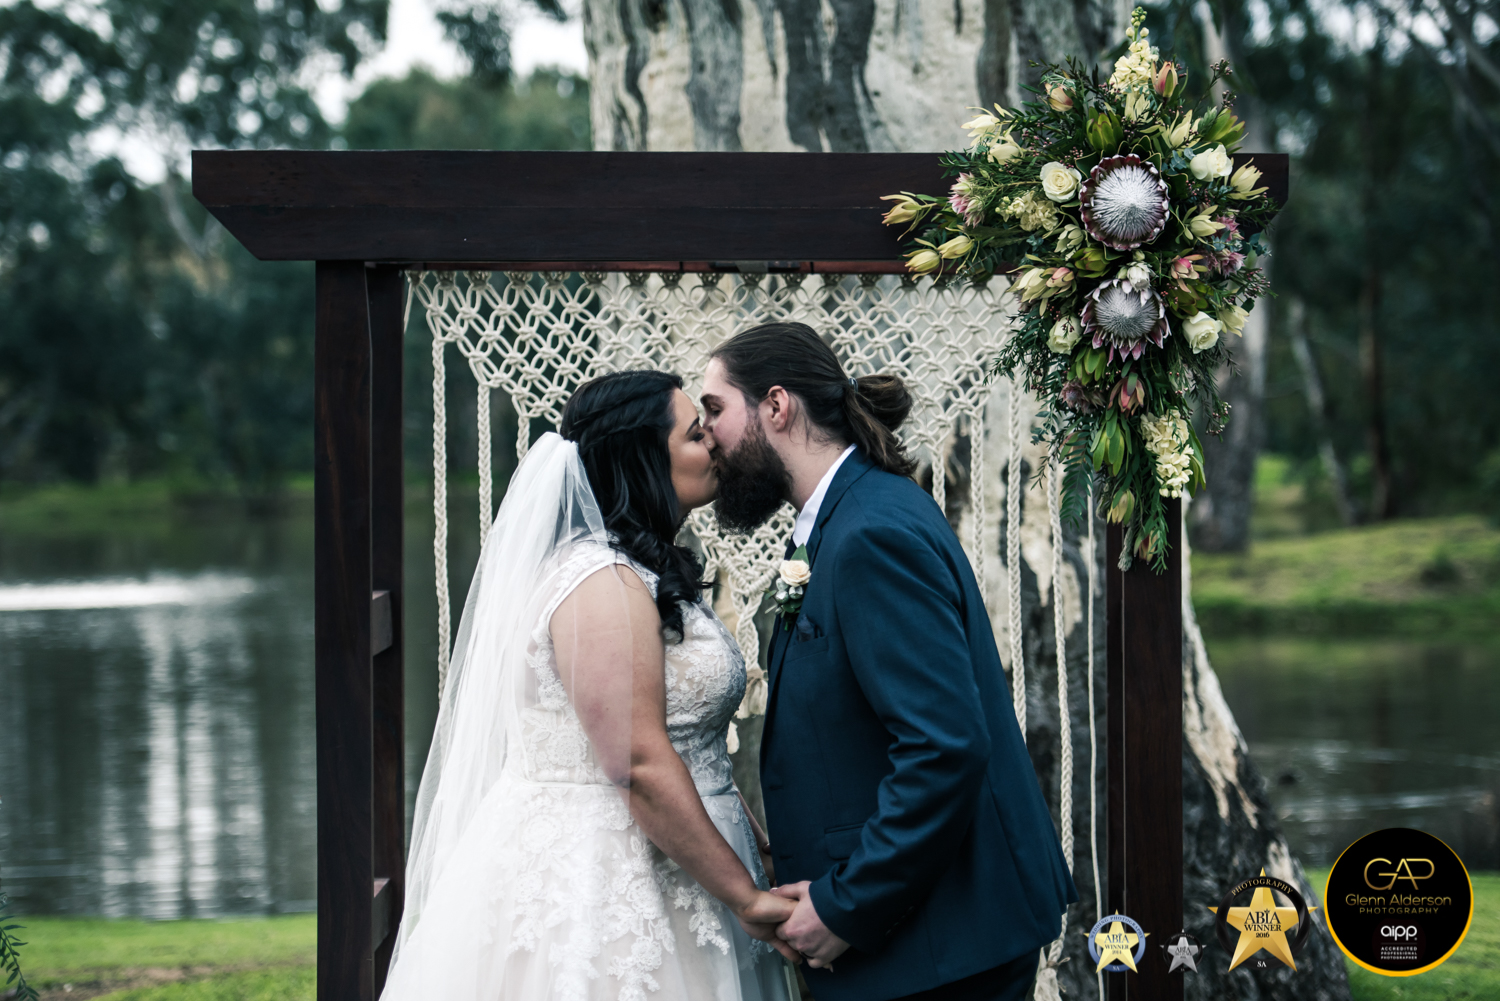 Karlee & Lachlan 01092017 WM (5 of 12)